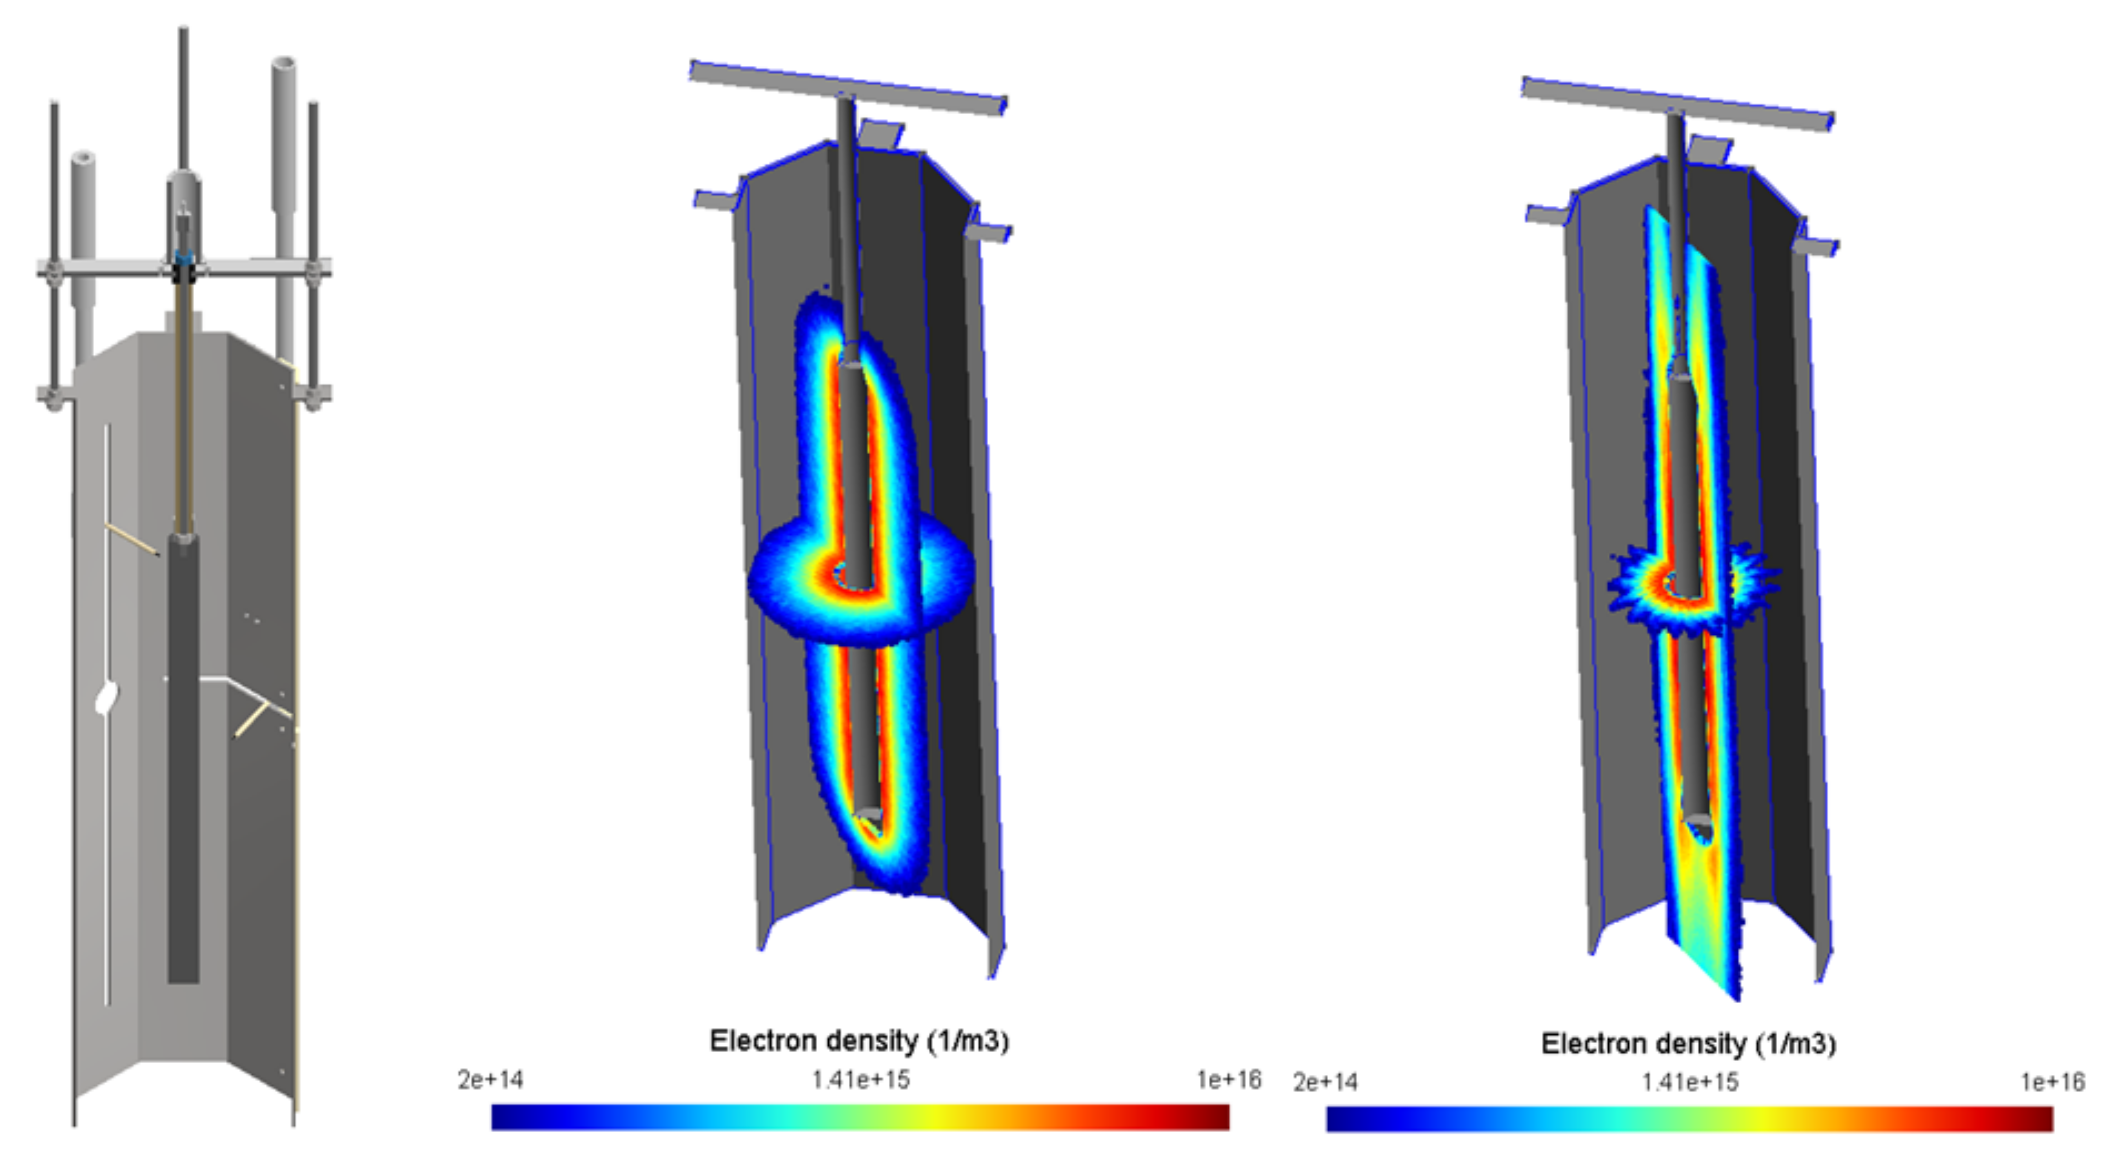 CAD experimental system with simulated electron densities